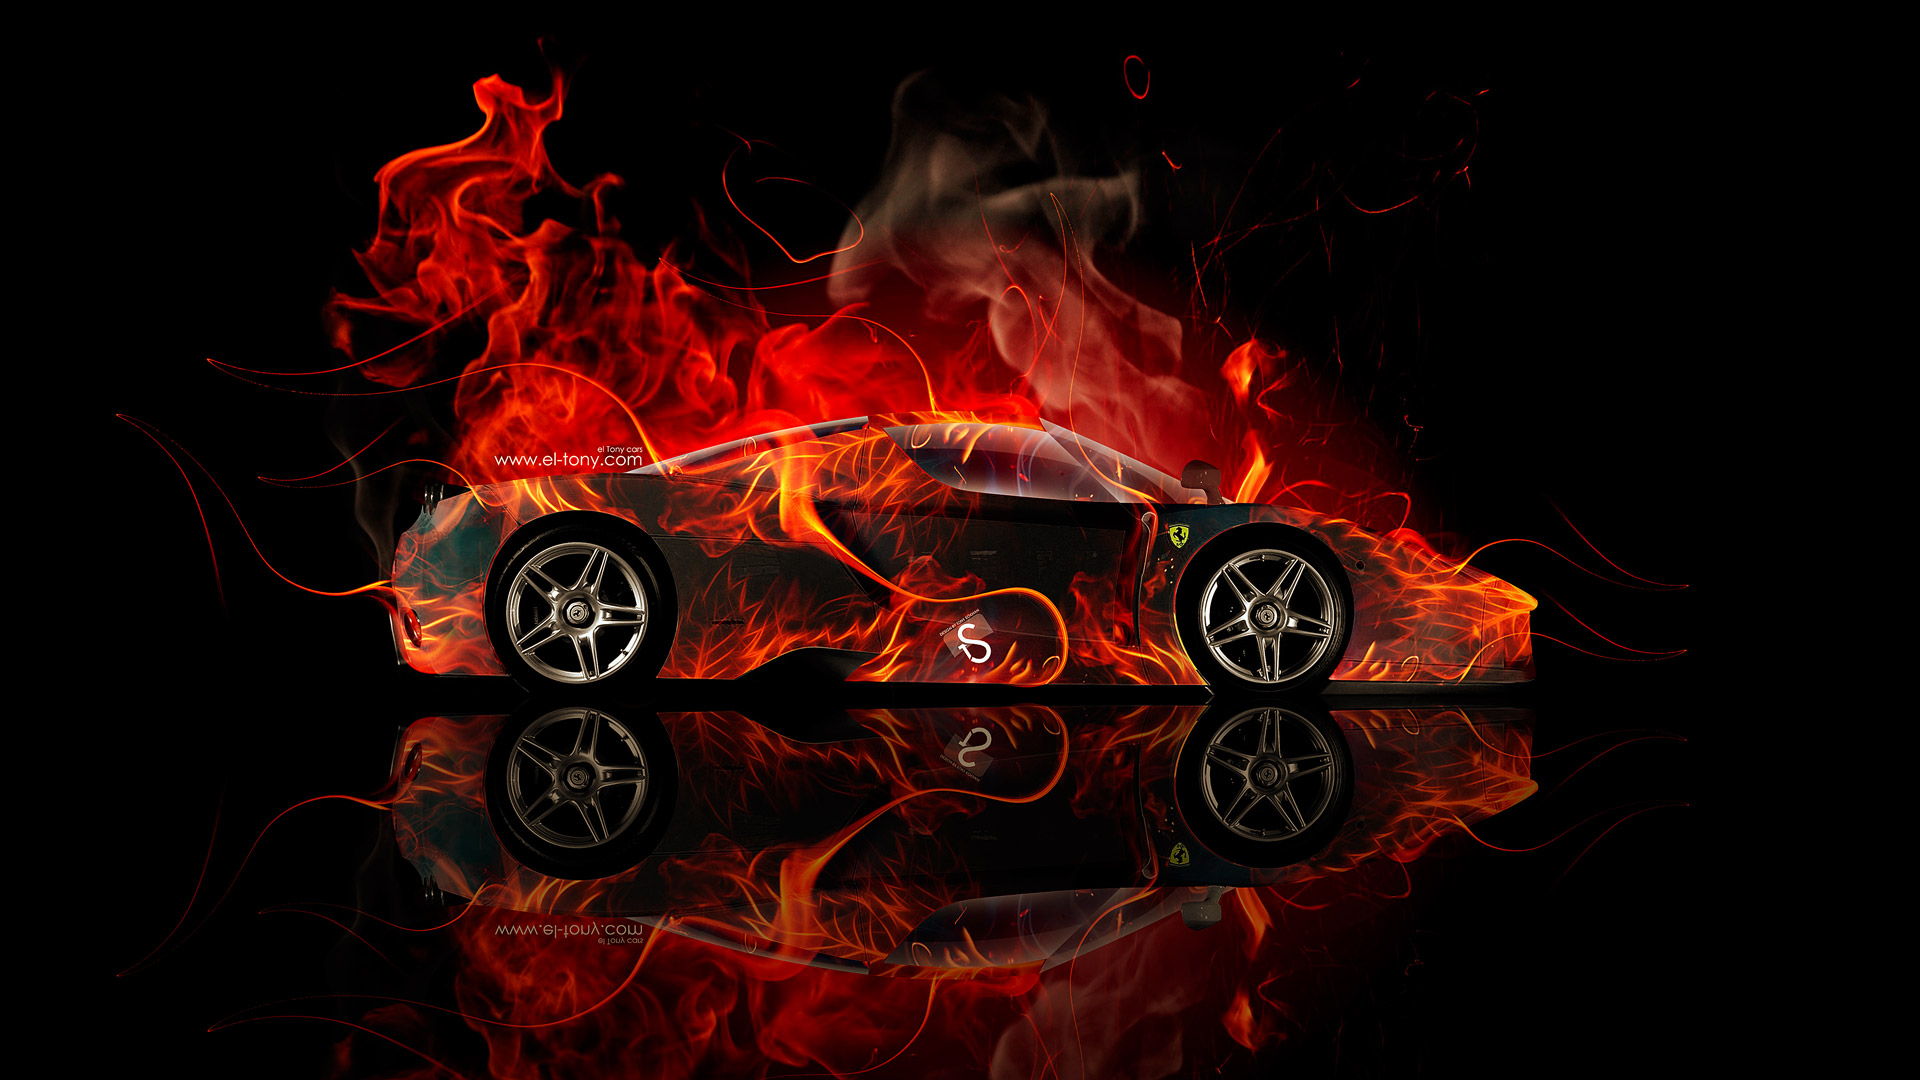 Ordinaire ... Ferrari Enzo Side Fire Abstract Car 2014